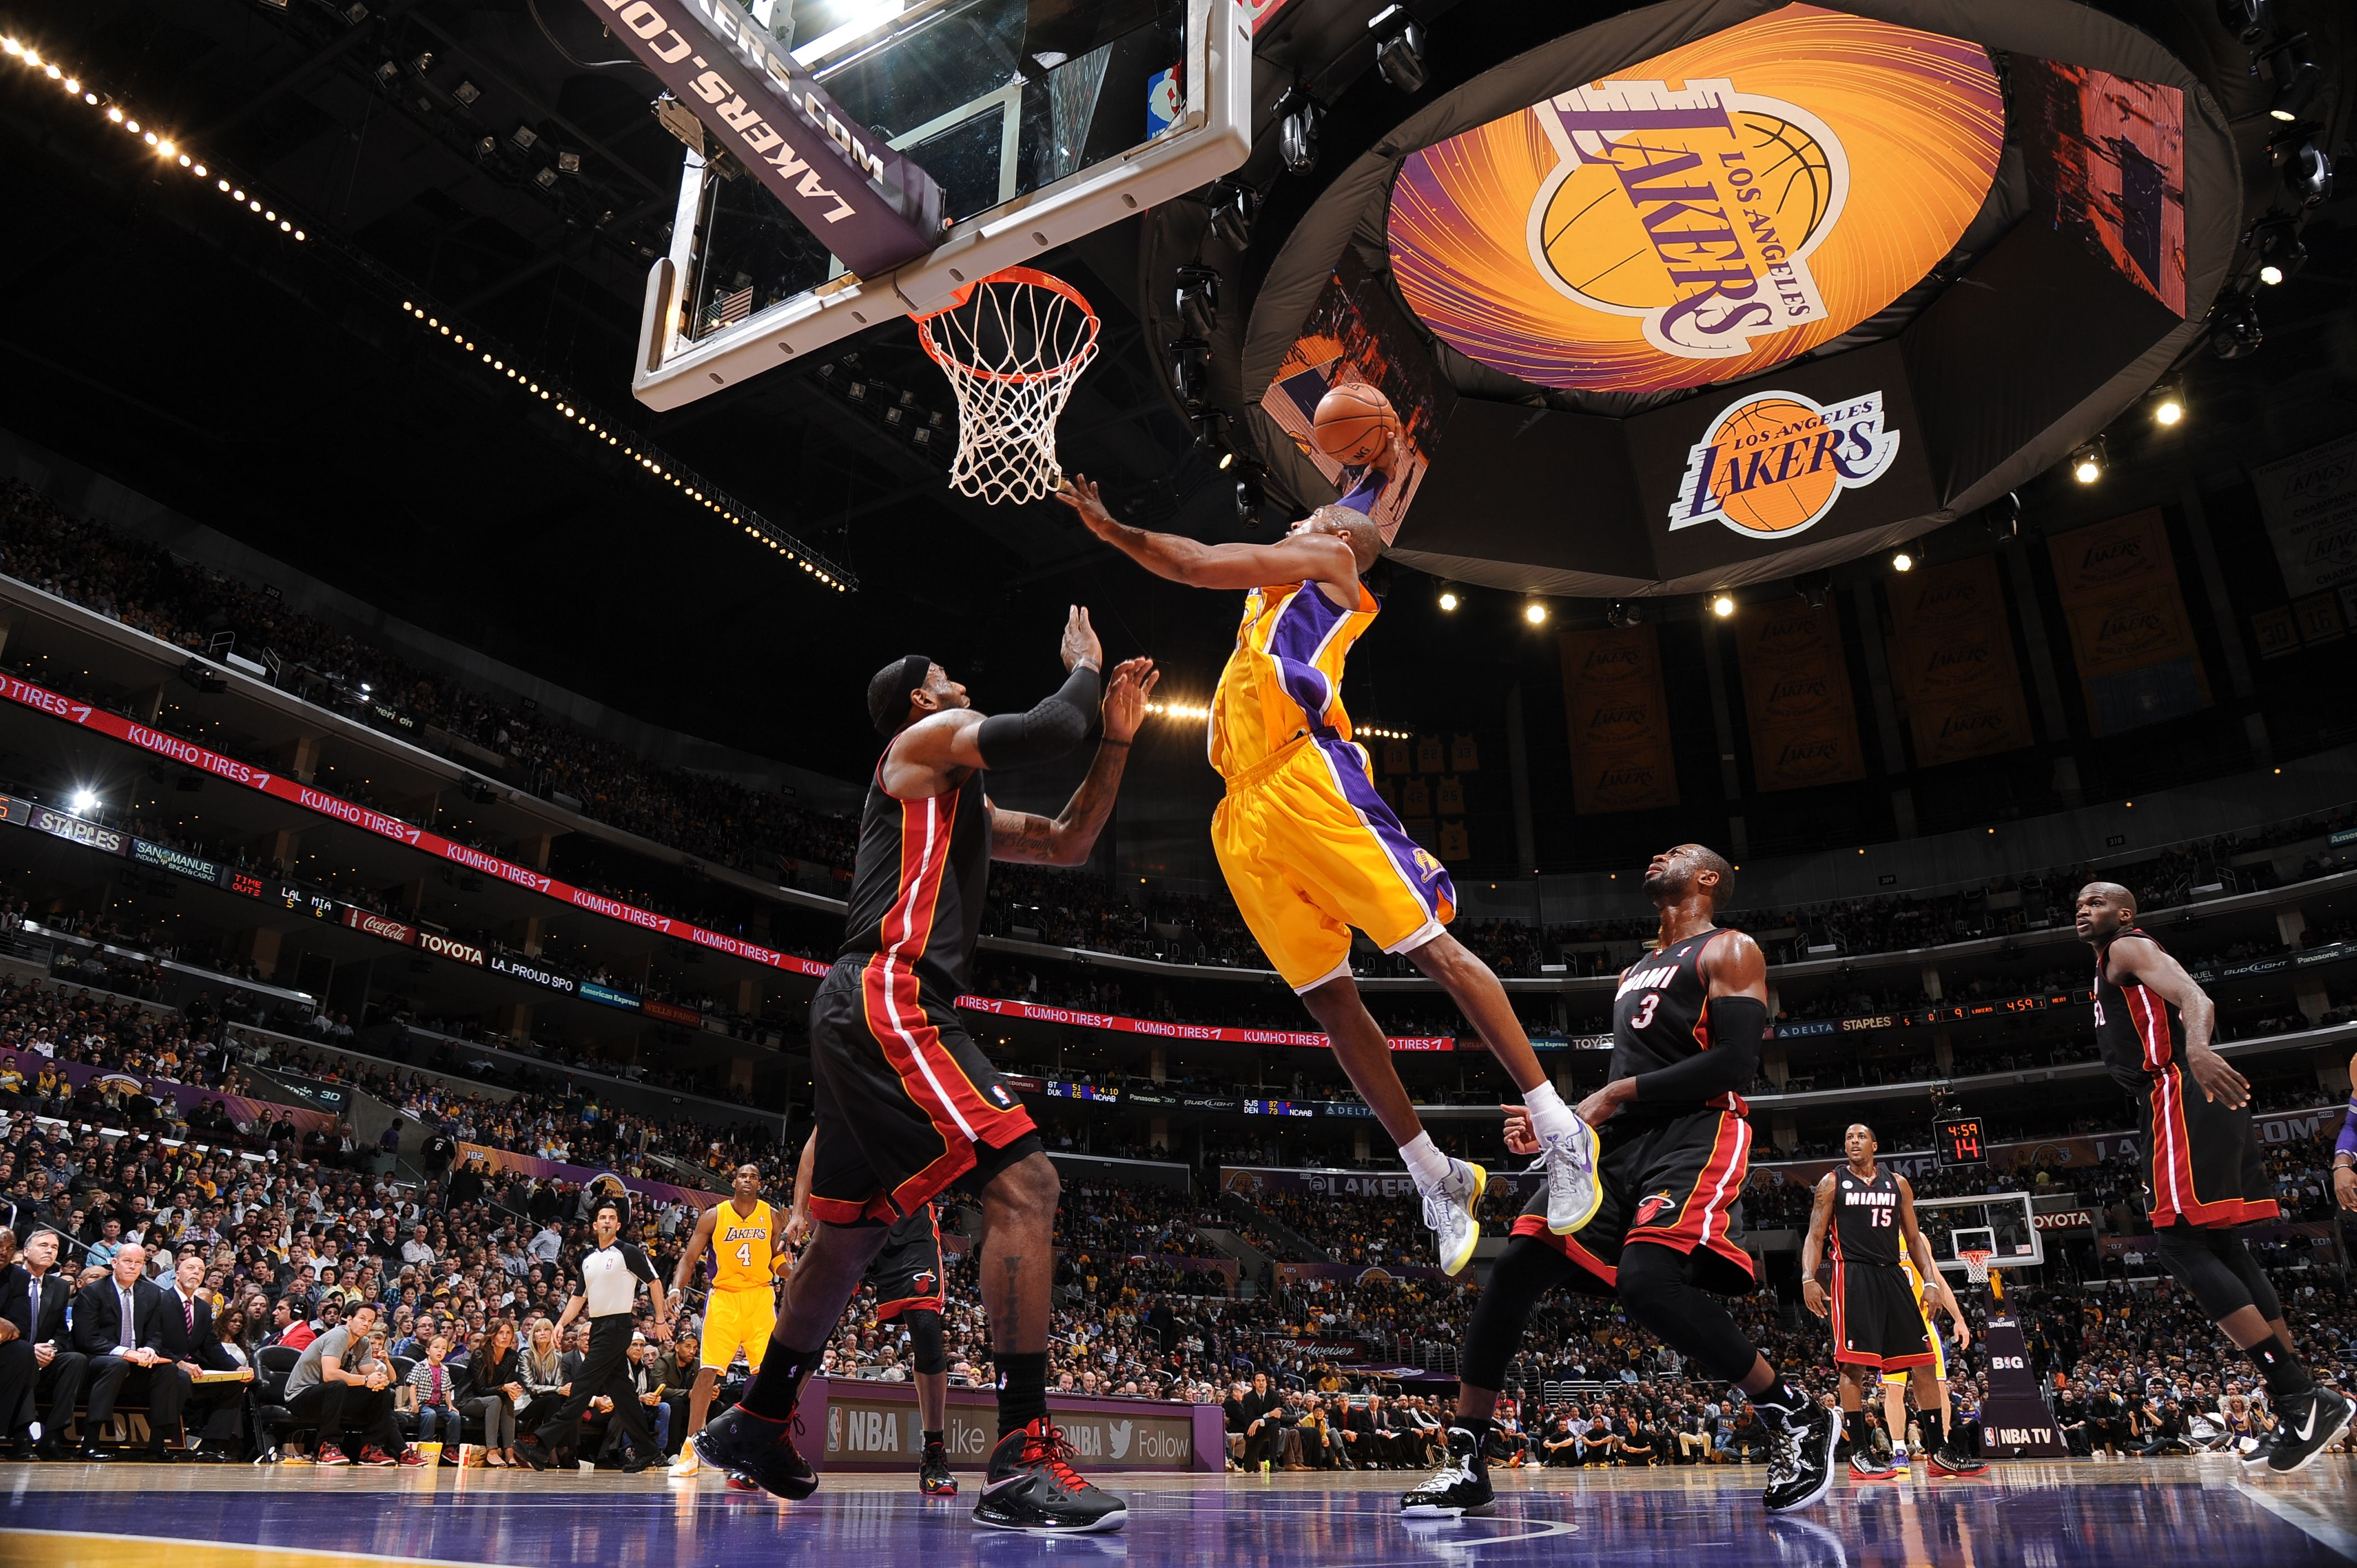 kobe bryant dunk wallpaper free desktop 8 hd wallpapers | kobe